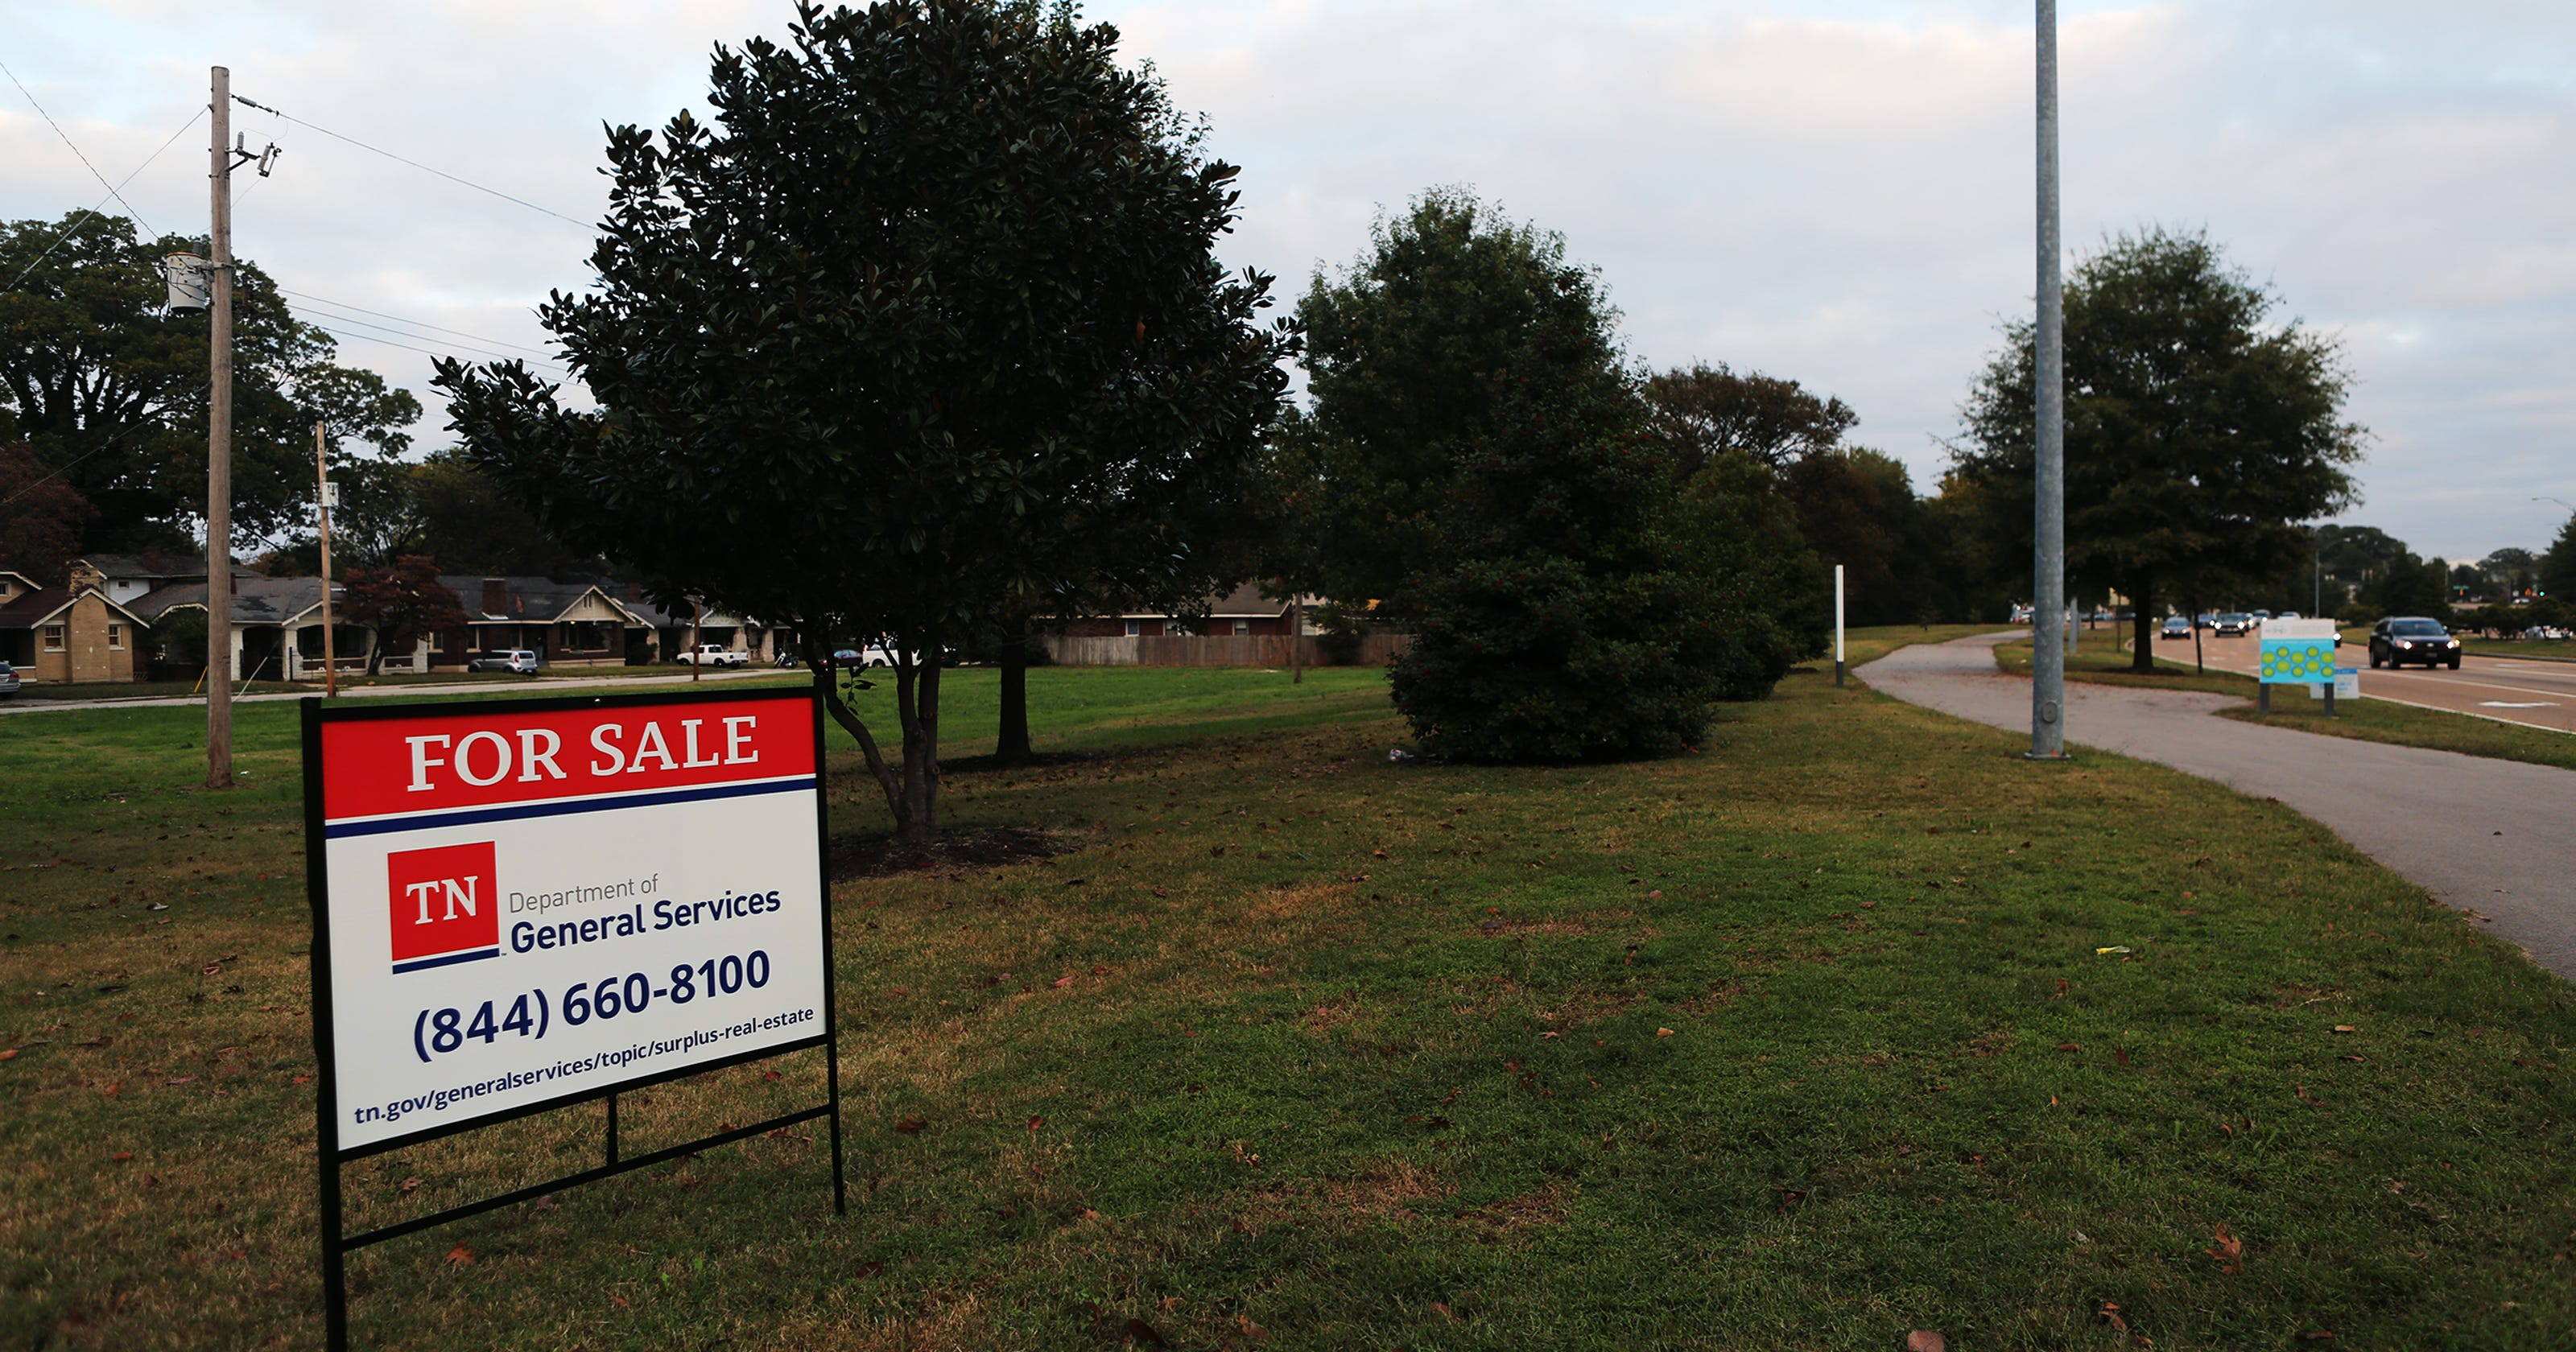 Apartments Planned At Sam Cooper, Overton Park-5650